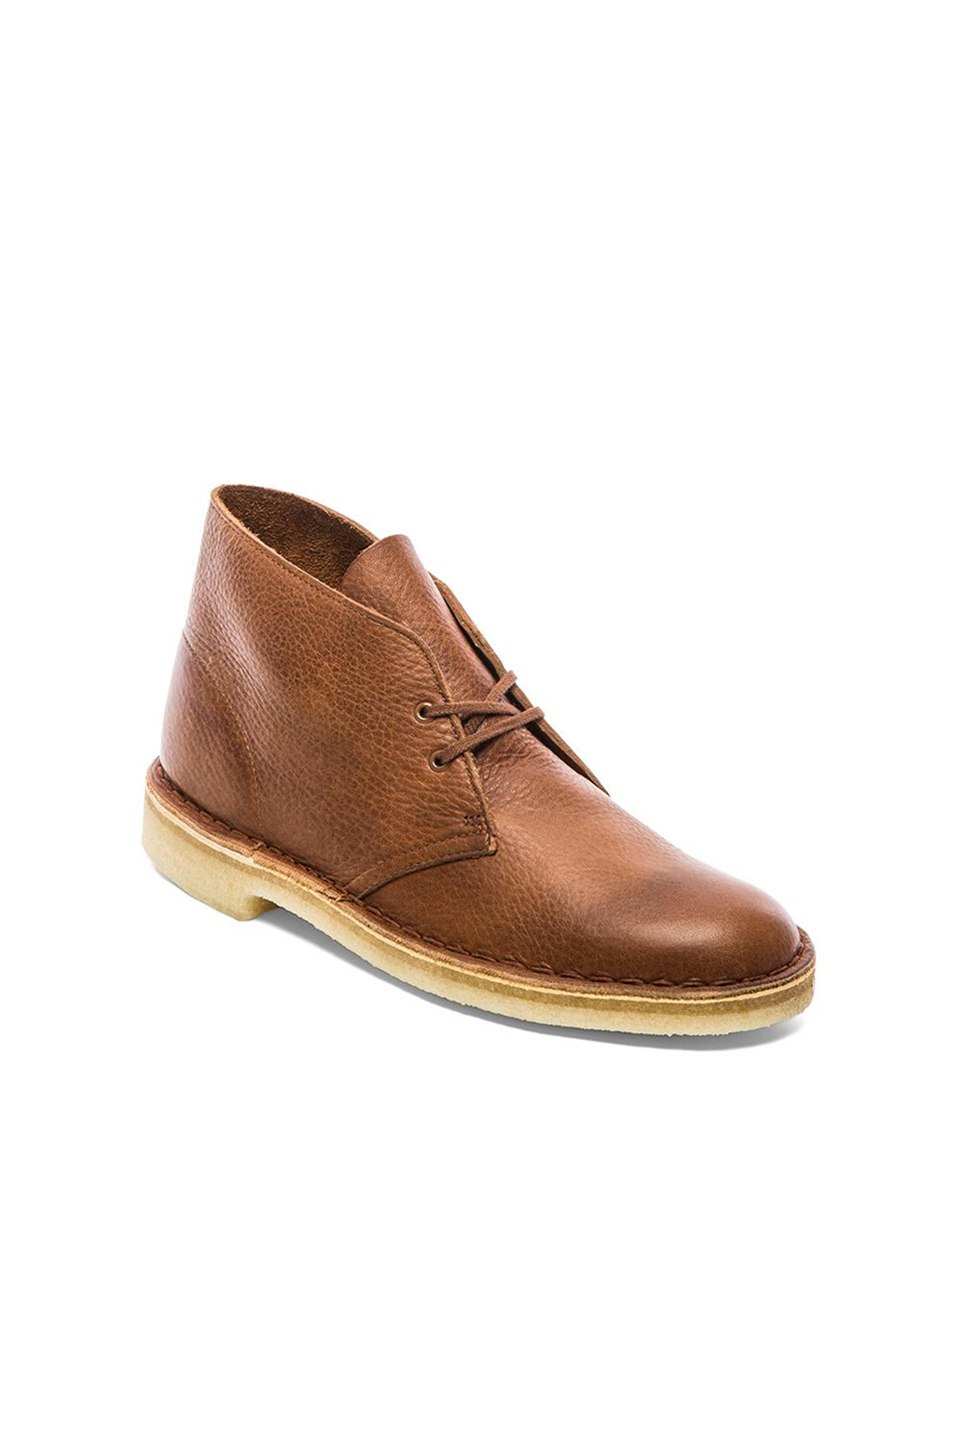 clarks desert boot in brown for men tan tumbled leather. Black Bedroom Furniture Sets. Home Design Ideas